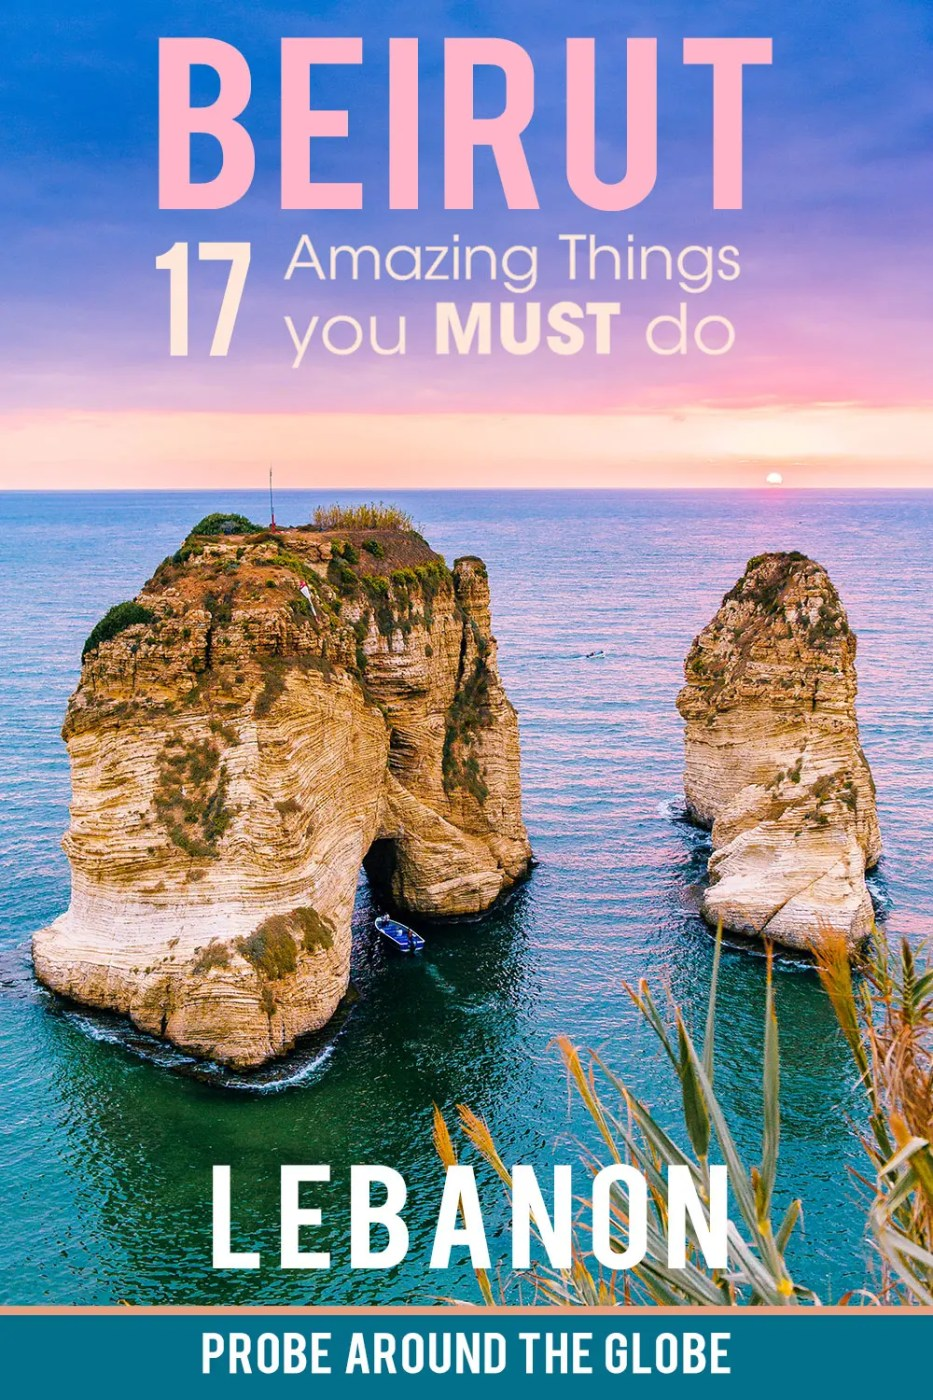 There are so many amazing places to visit in Beirut, that I help you with the best things to do in Beirut Lebanon.